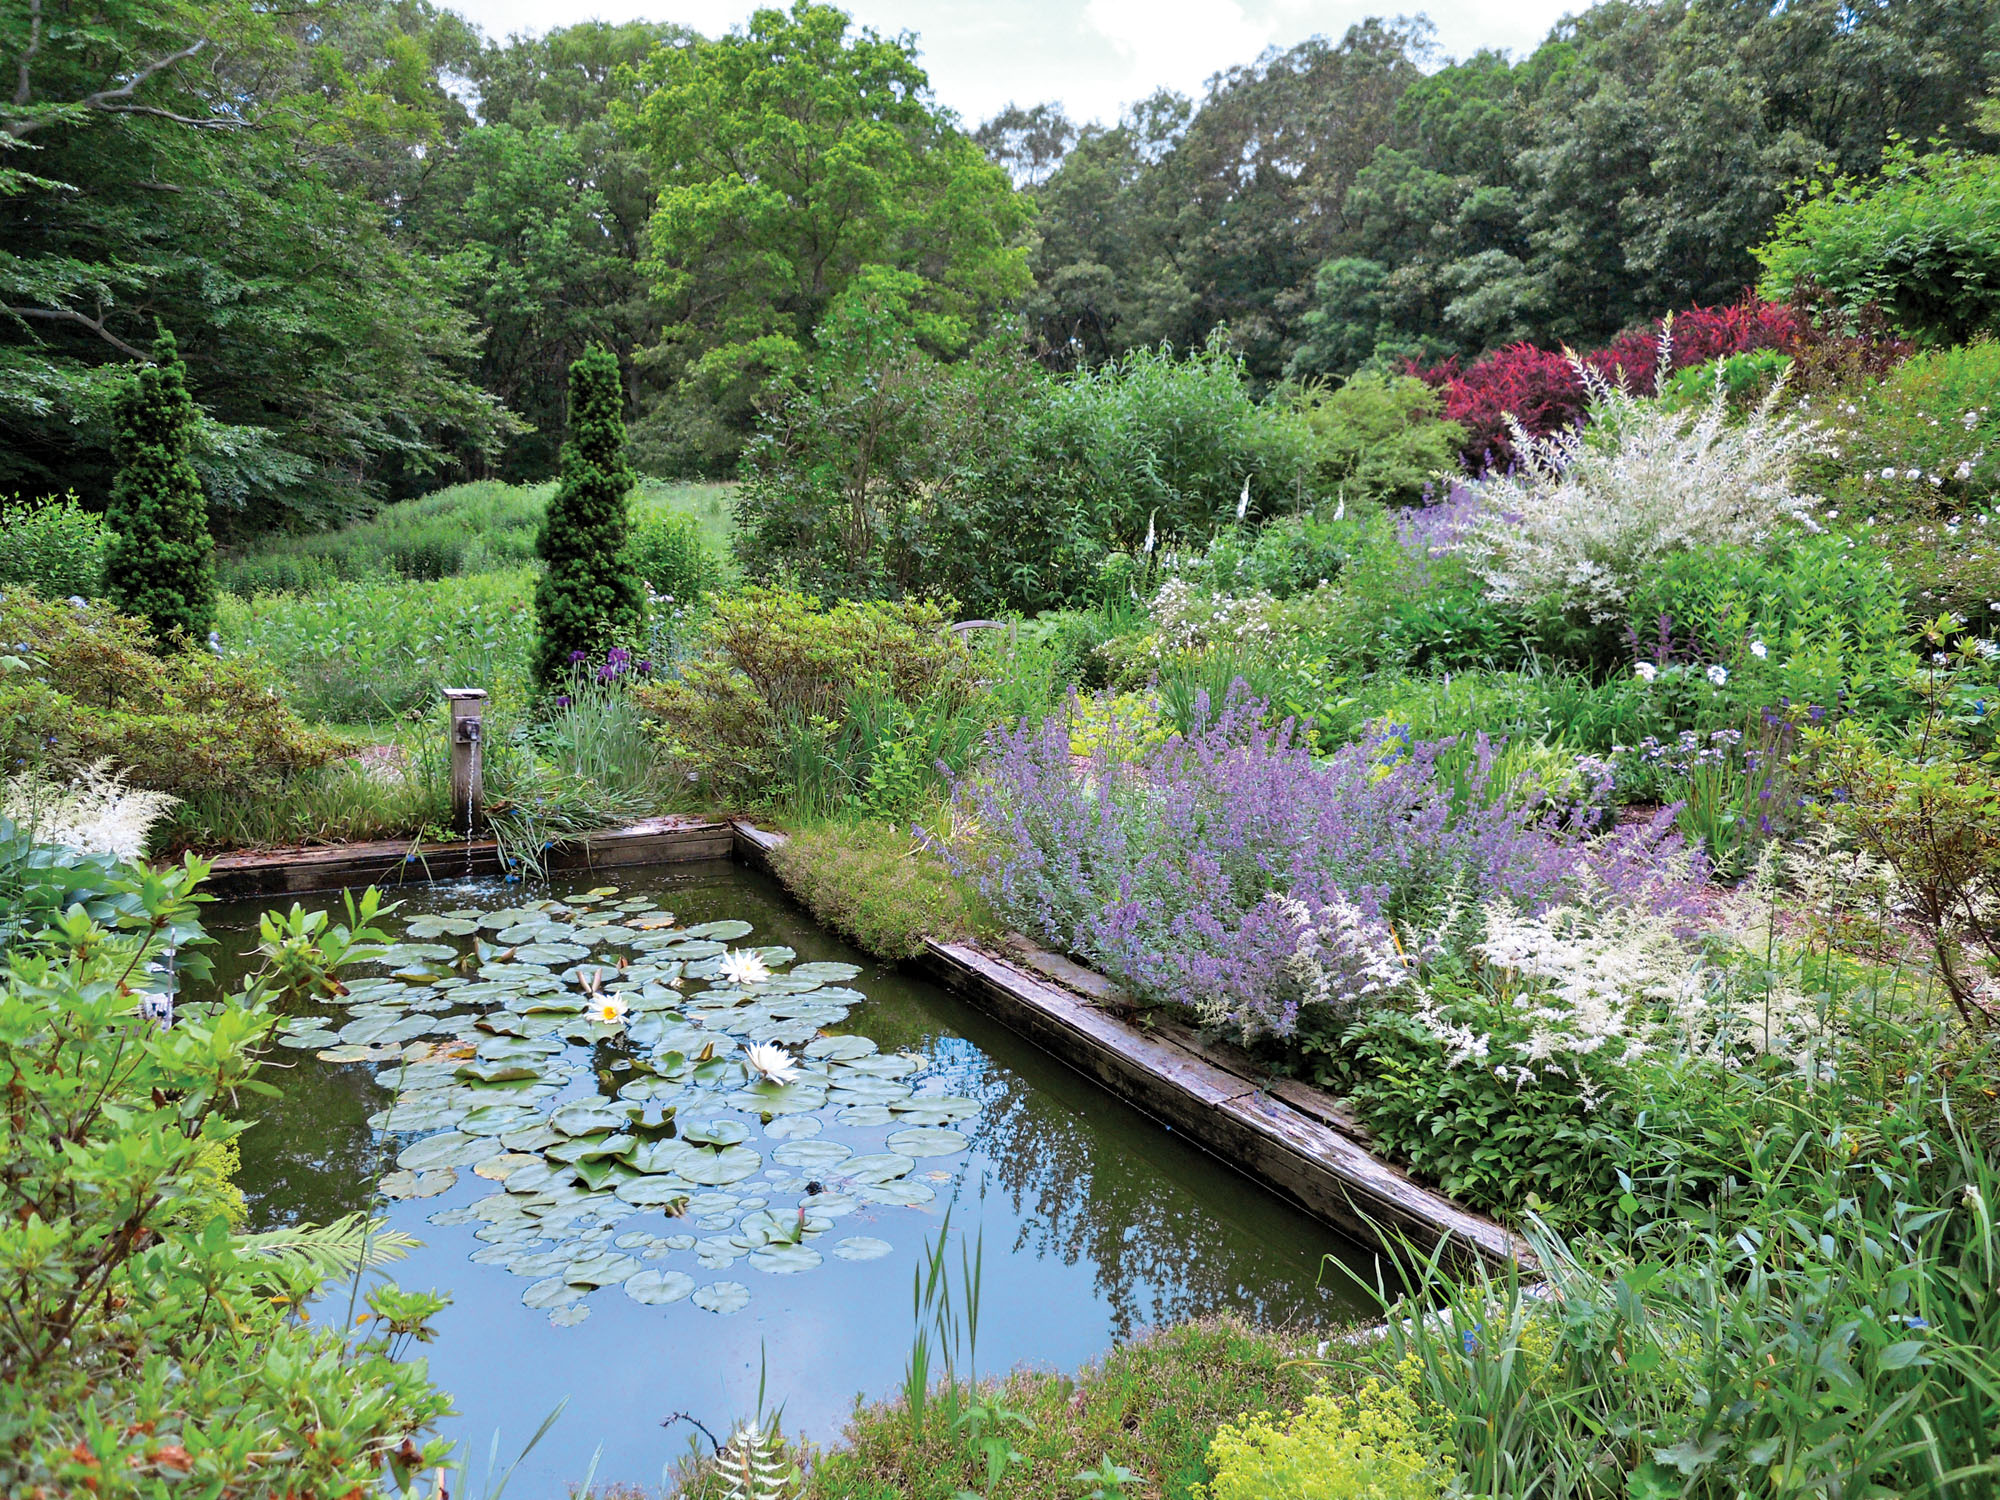 azaleas, astilbes, and blue catmint surround lily pond